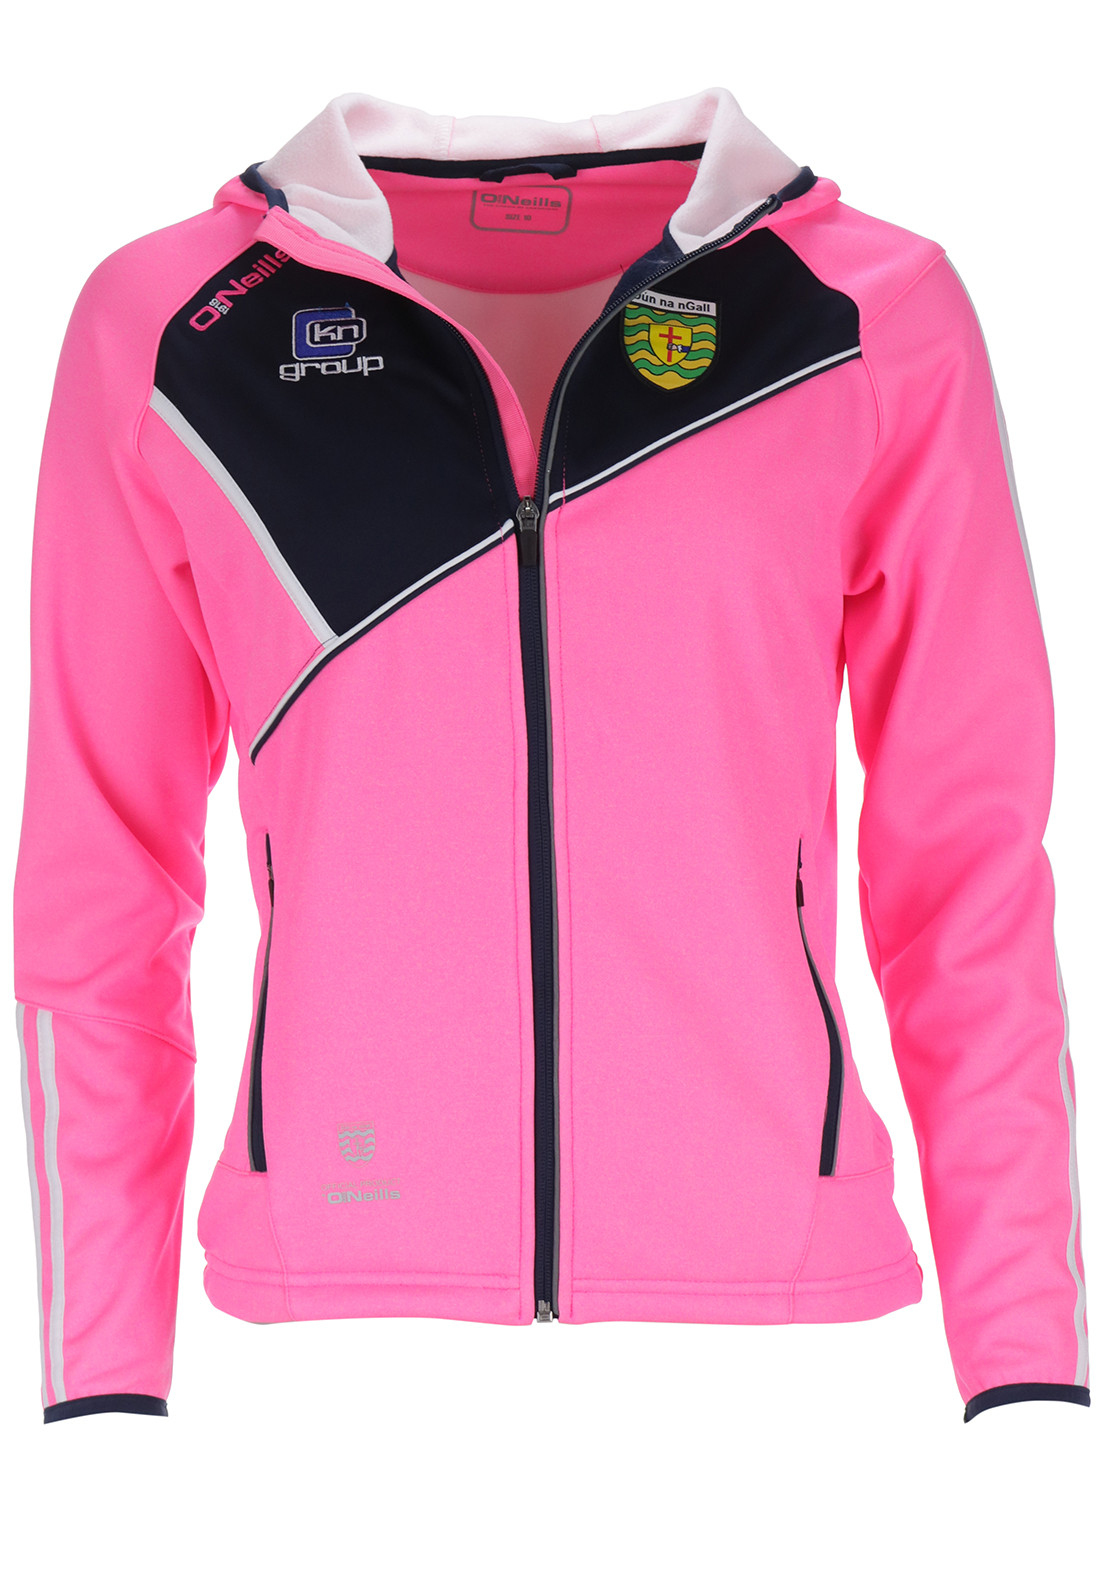 O'Neill's Donegal GAA Womens Conall Hooded Jacket, Pink